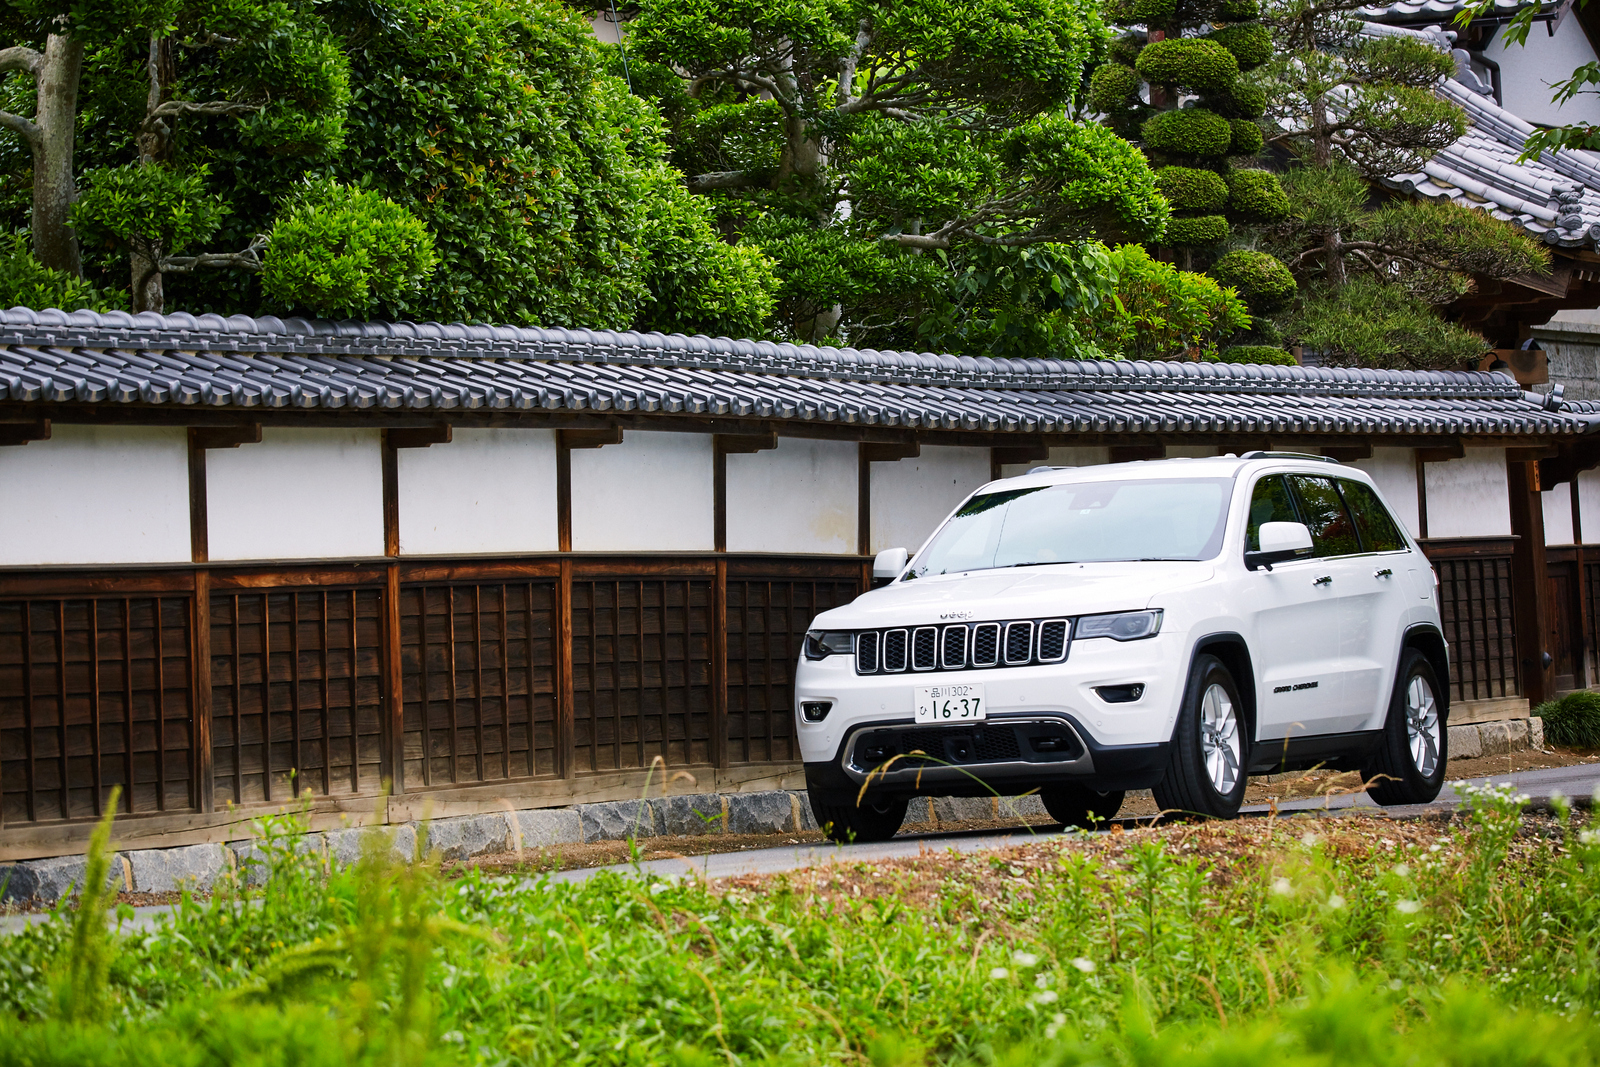 data_jw_060 My Jeep®,My Life. ボクとJeep®の暮らしかた。写真家・若木信吾